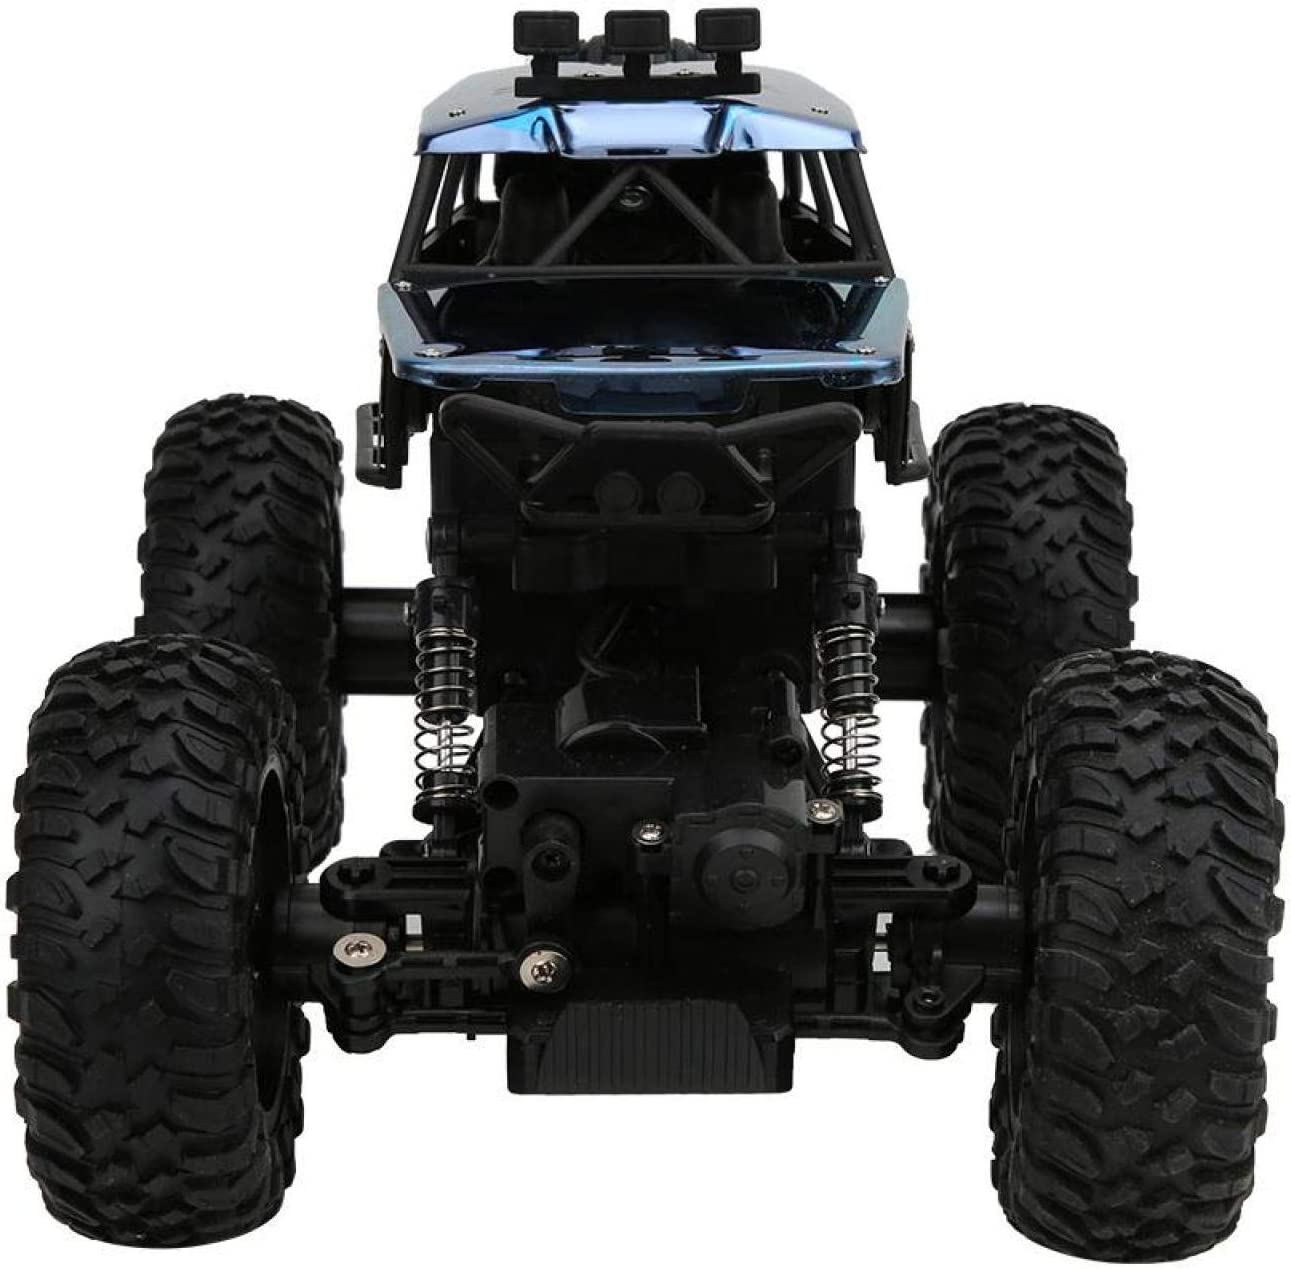 Okuyonic Kids Birthday Gift 1:14 Vehicl Alloy 2.4G Off‑Road National products Max 67% OFF